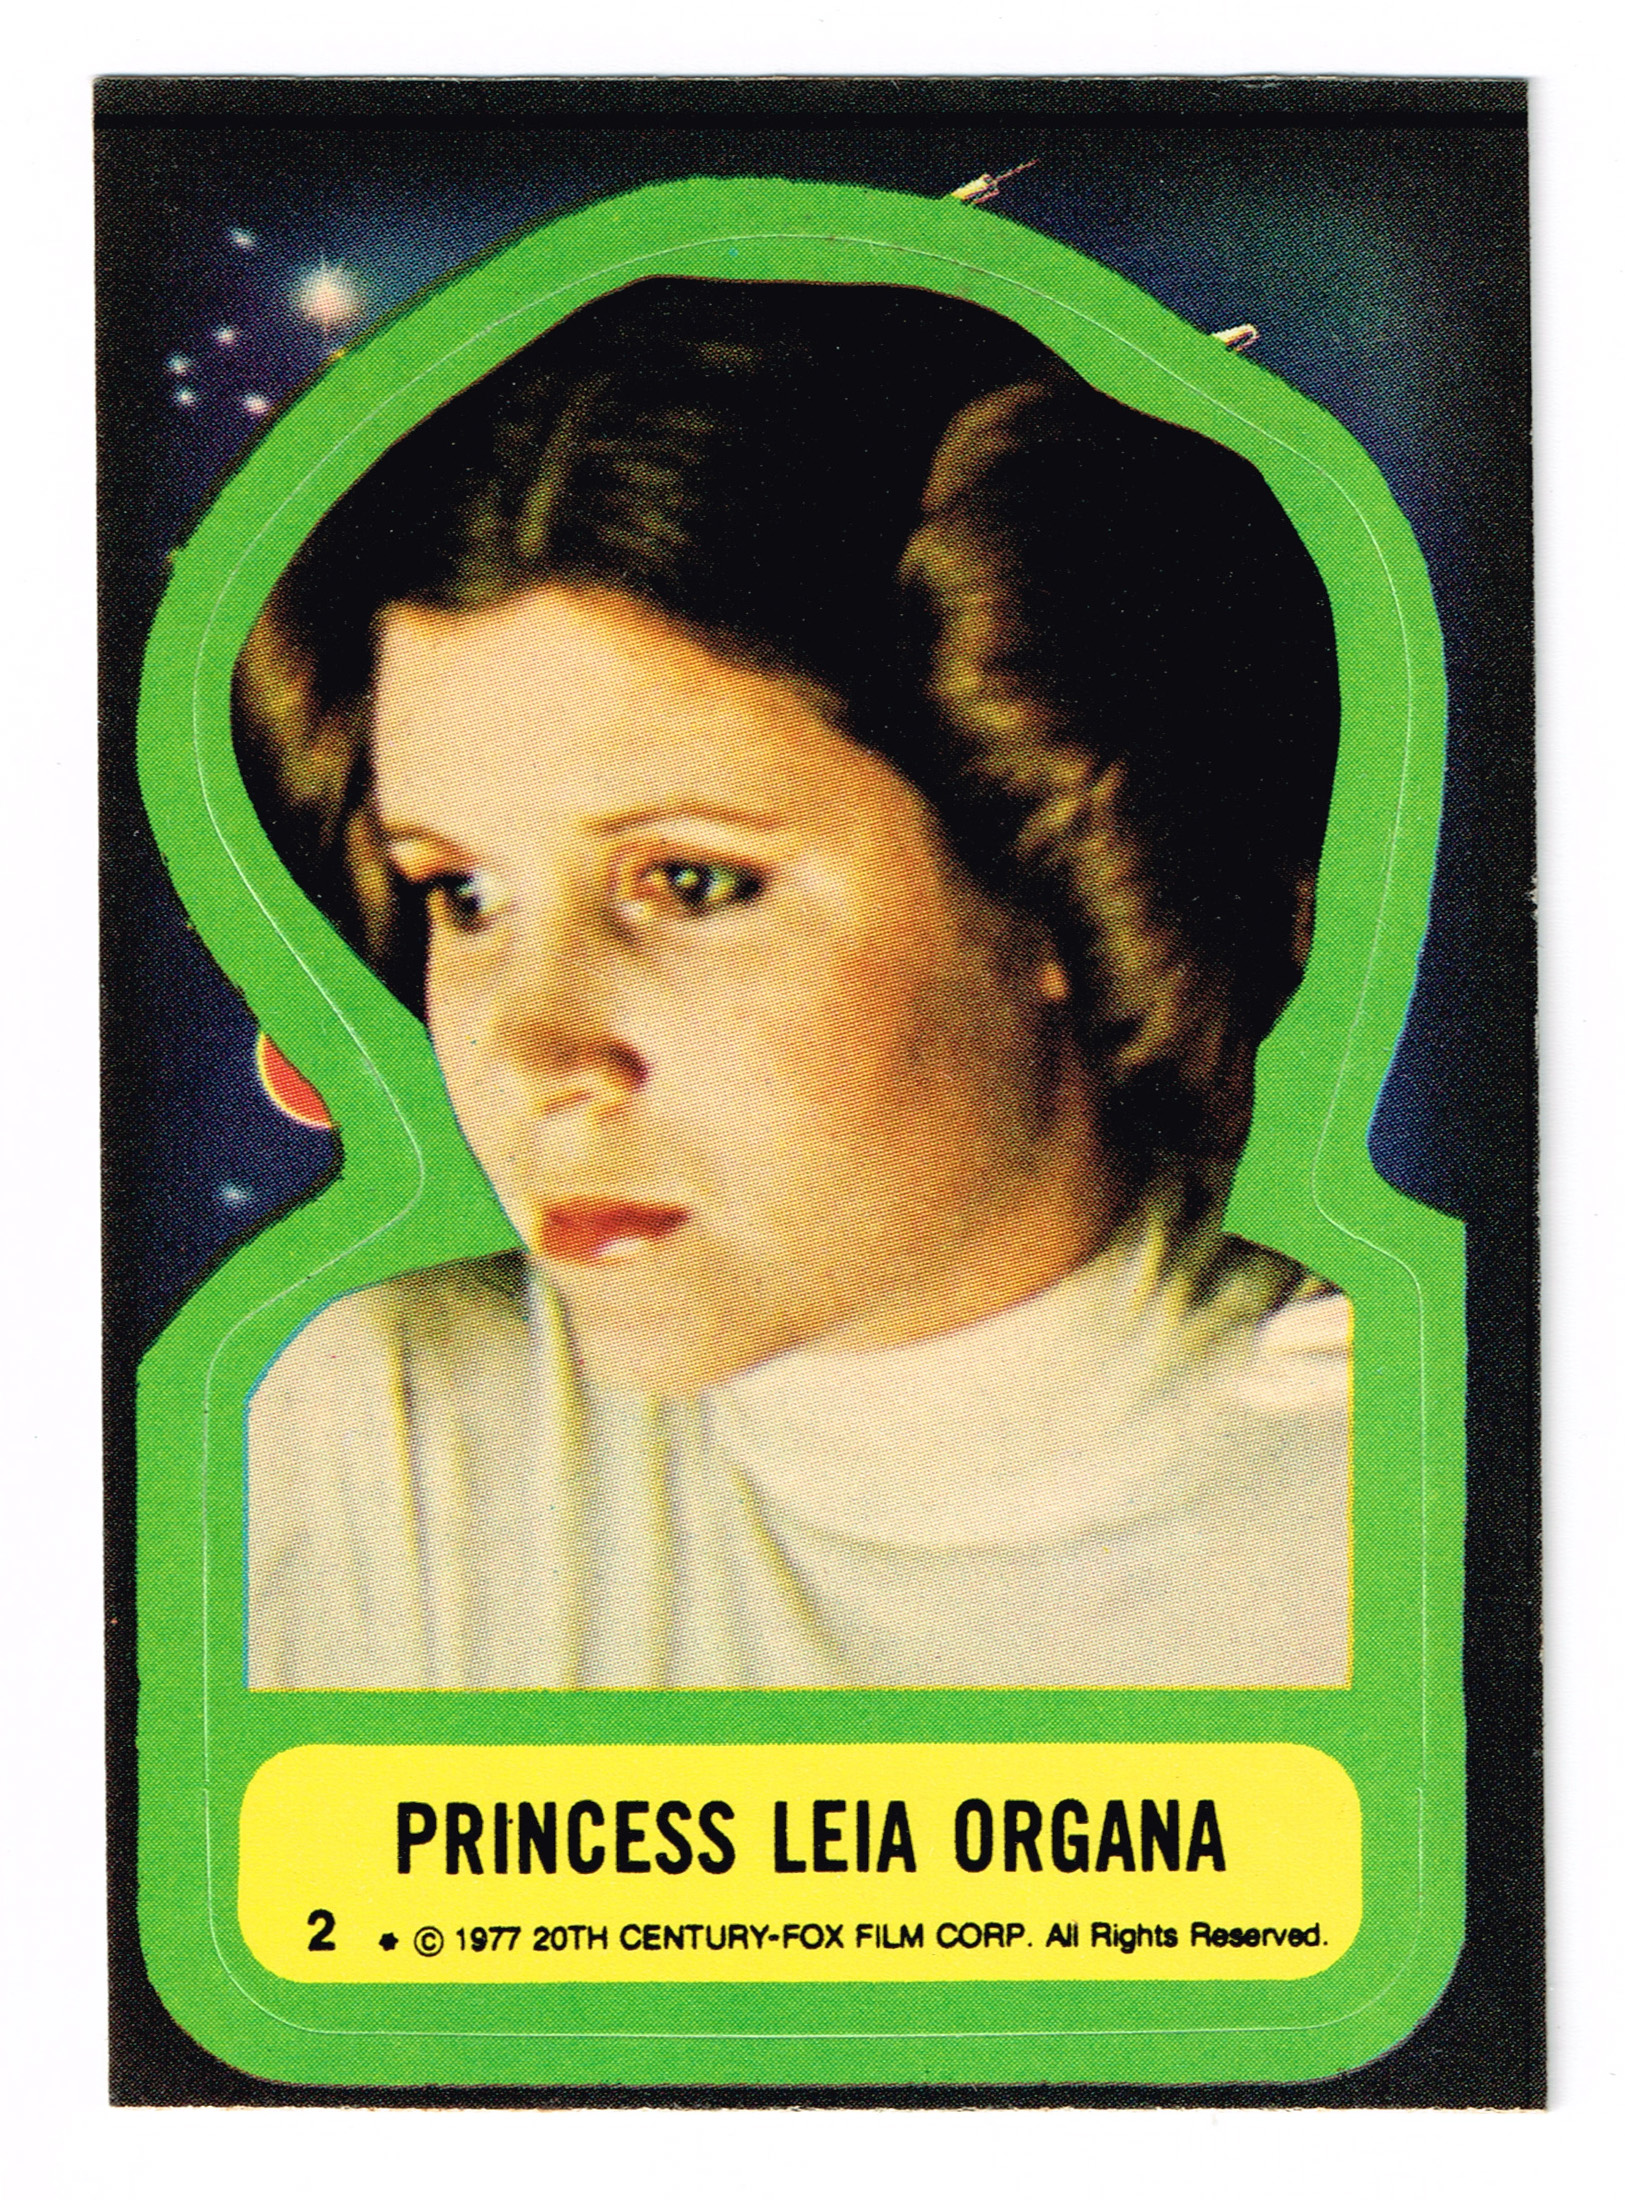 Topps USA Star Wars sticker no.2